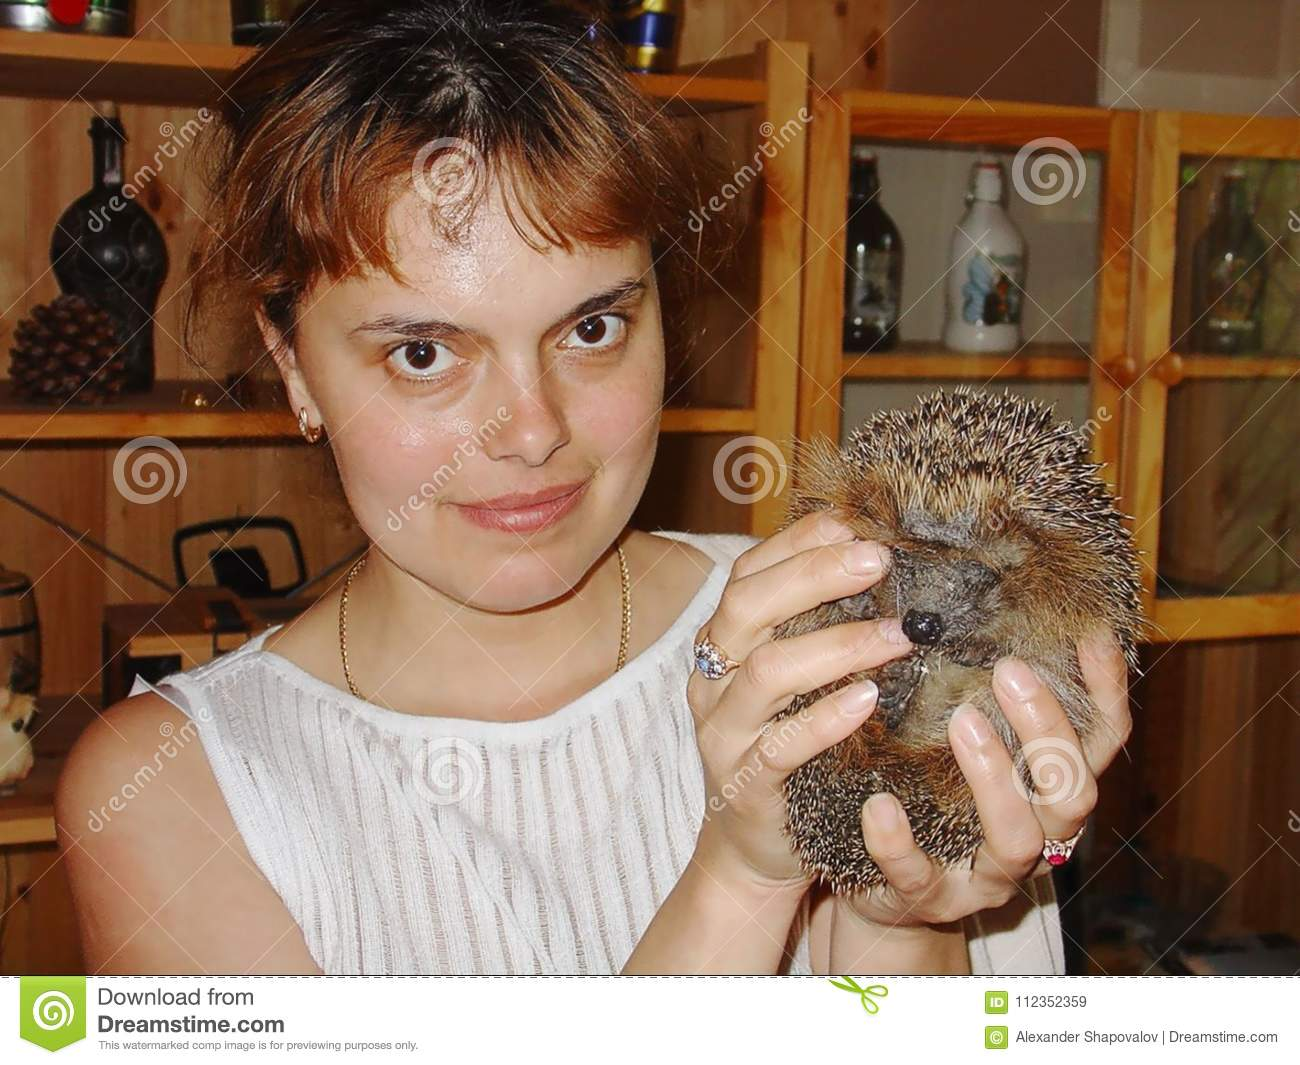 Close up view of a smiling woman holding cute hedgehog in hands.